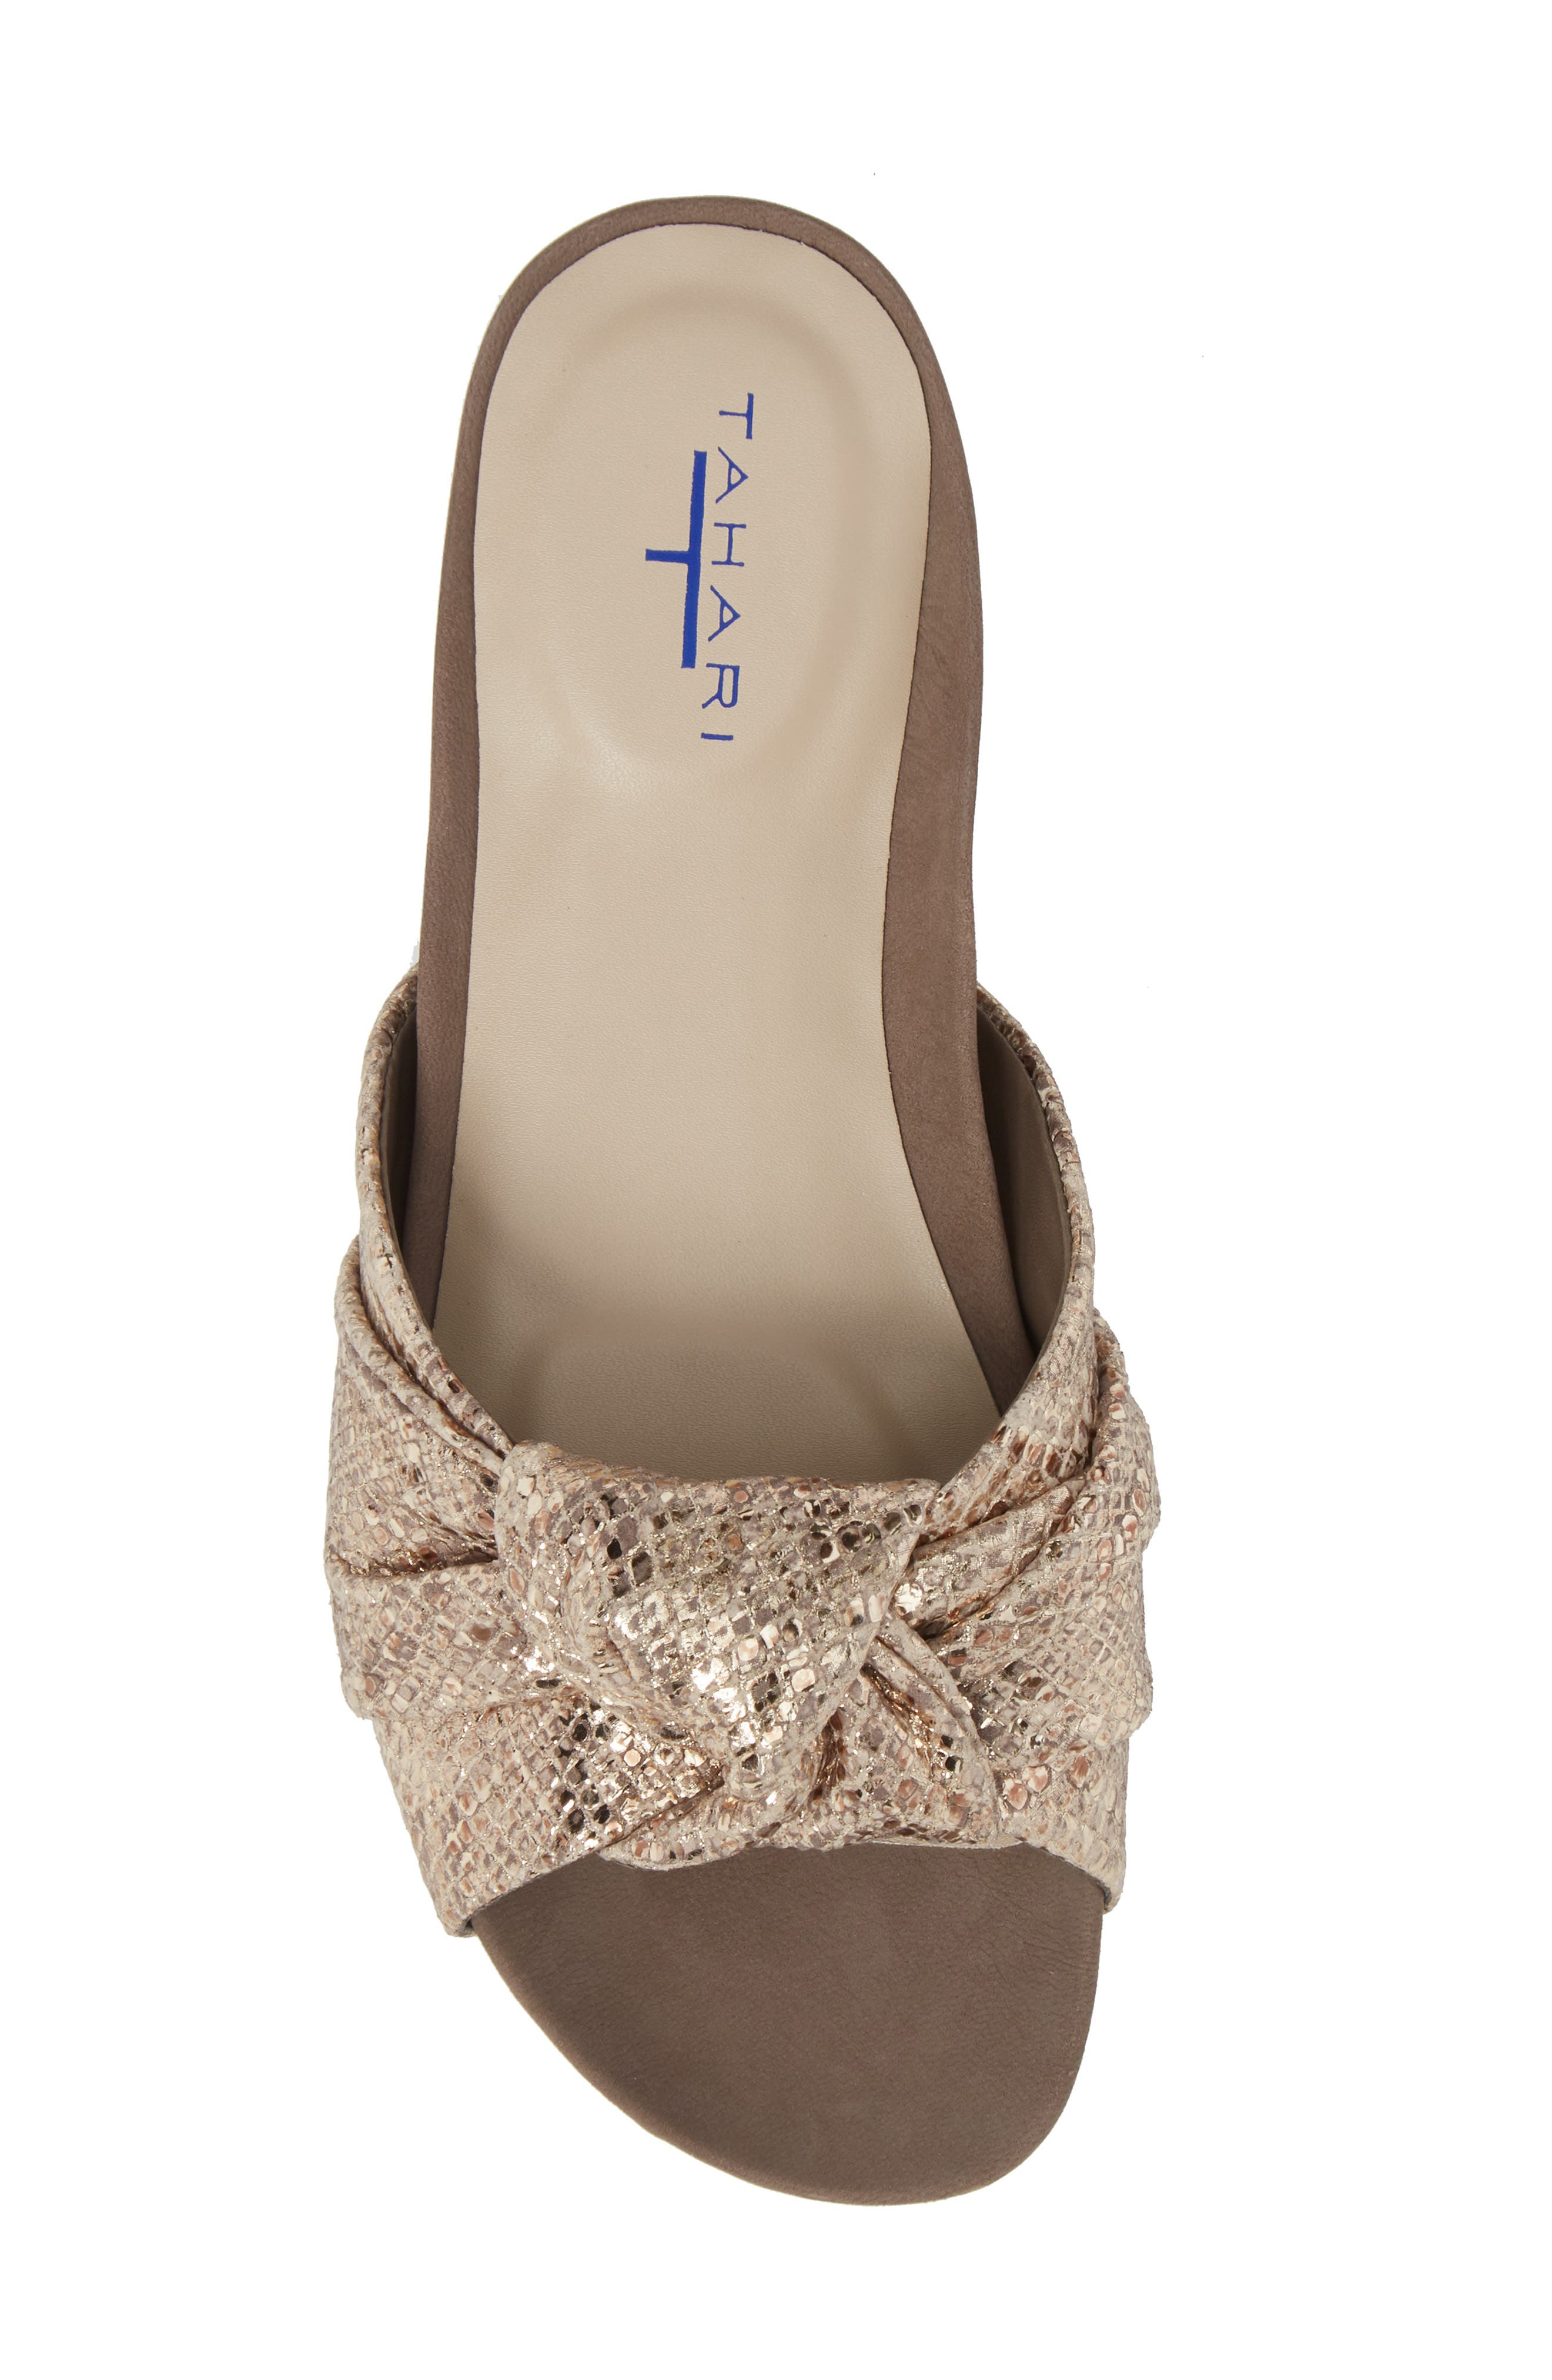 Lauren Slide Sandal,                             Alternate thumbnail 5, color,                             Taupe-Gold Suede